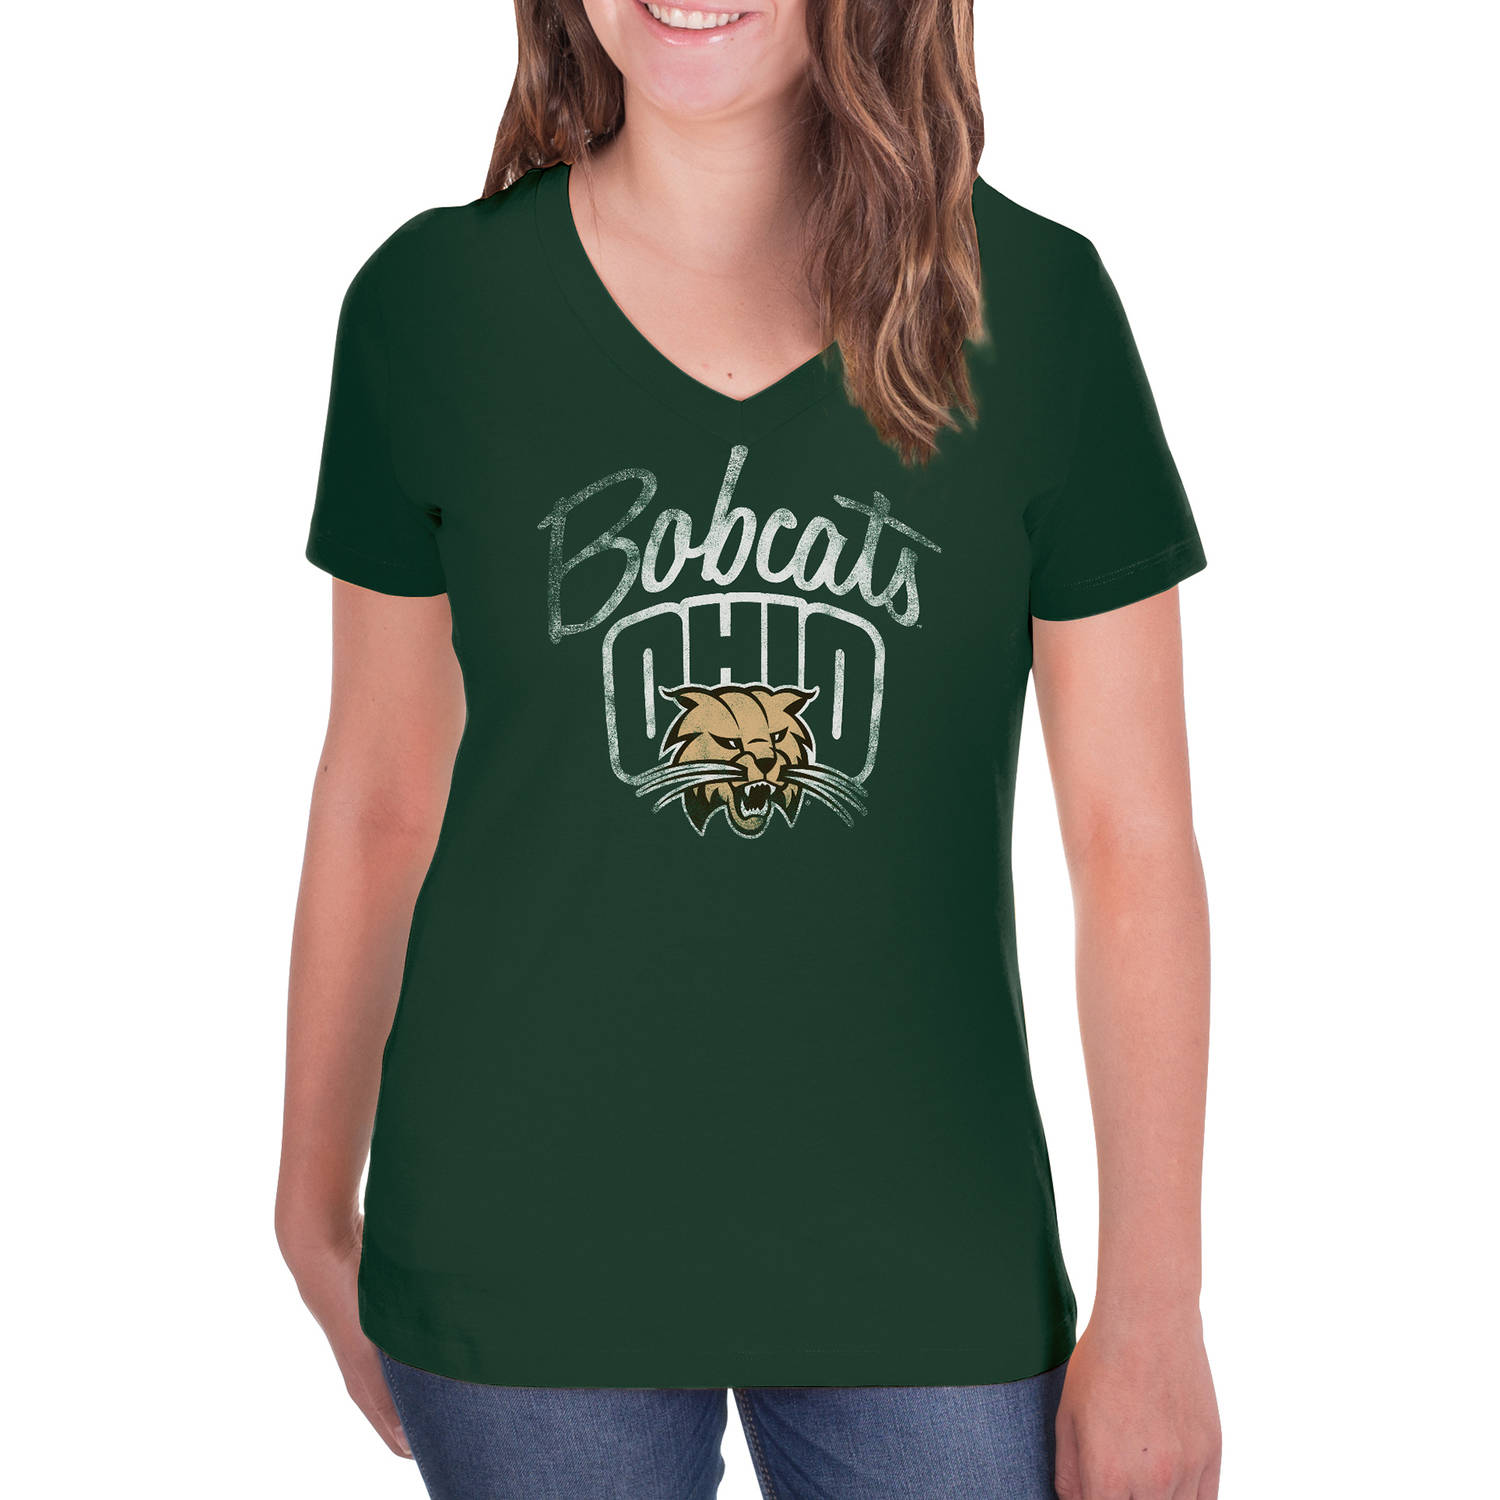 NCAA Ohio Bobcats Women's V-Neck Tunic Cotton Tee Shirt